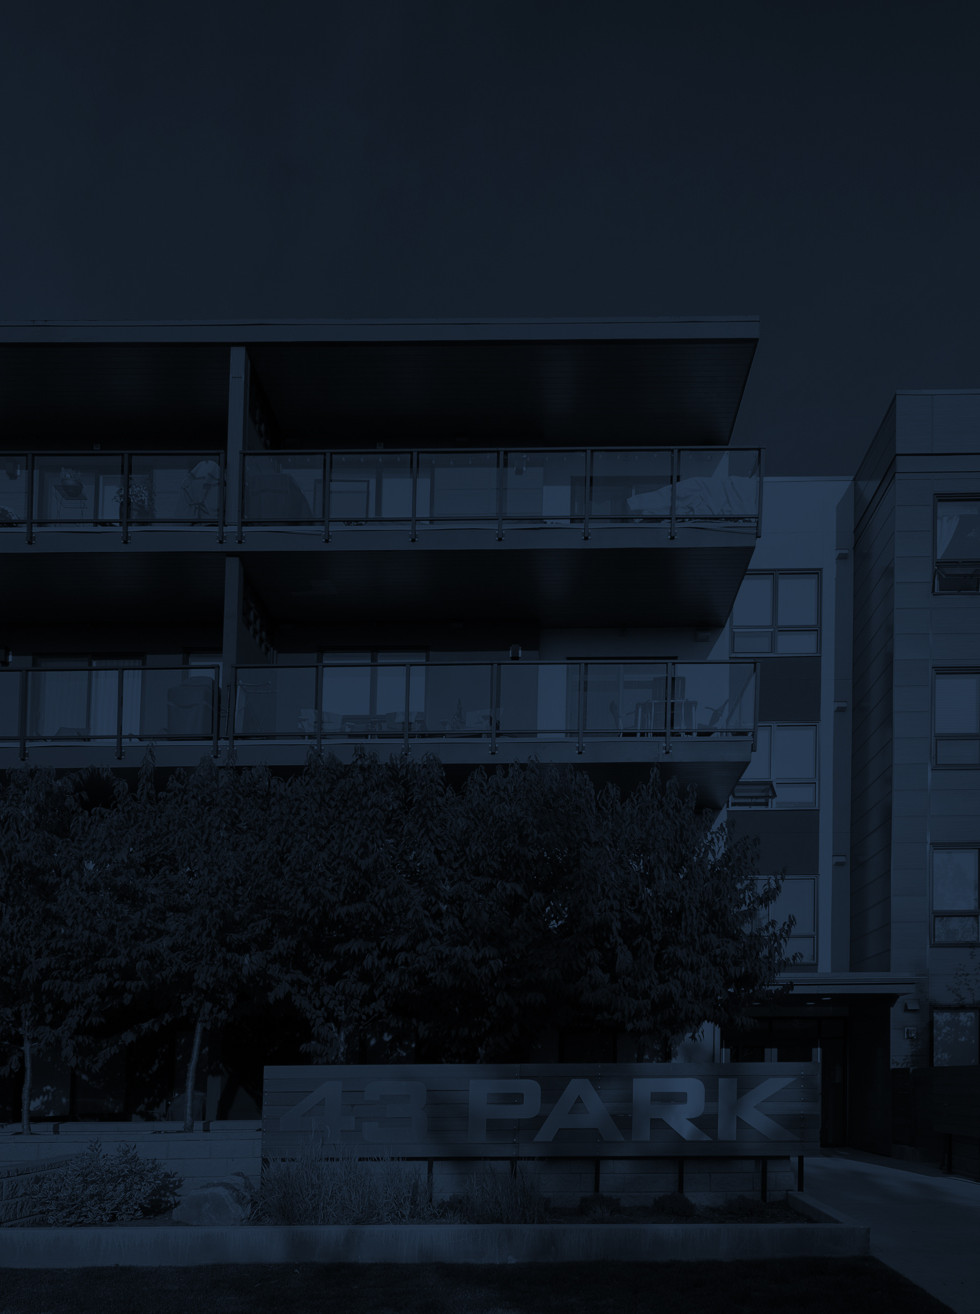 43 Park Multi-Residential - Landing Page